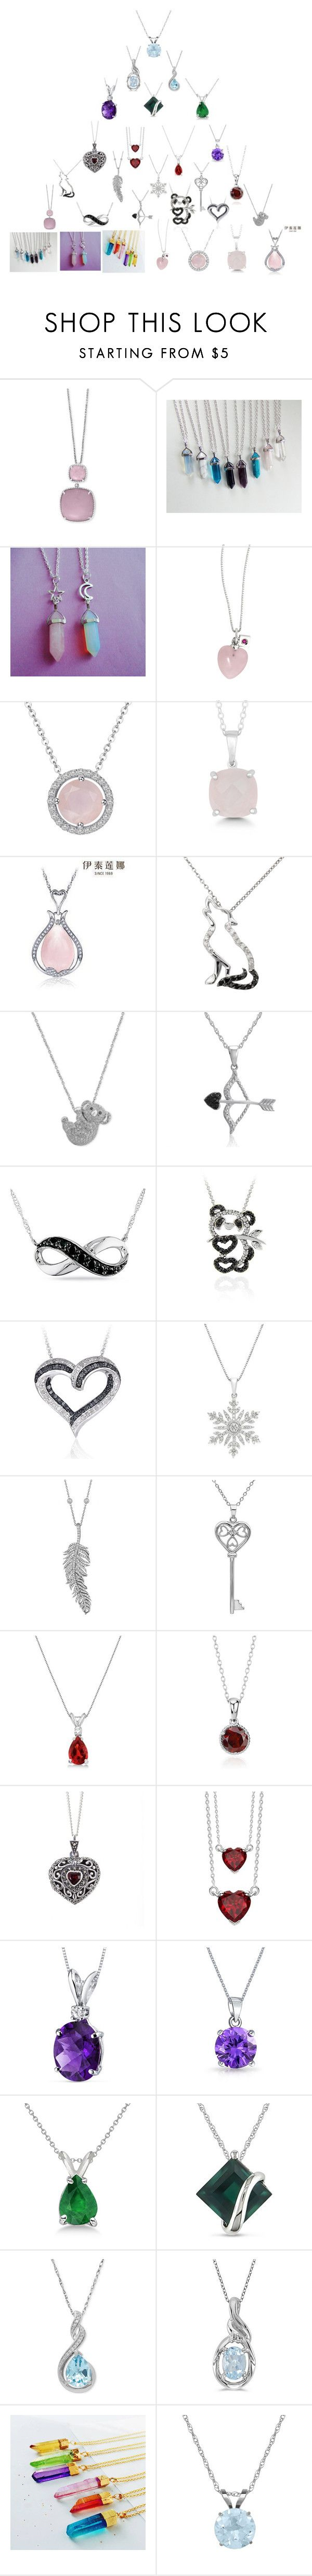 """""""Necklaces"""" by giacozz ❤ liked on Polyvore featuring Effy Jewelry, H.Azeem, La Preciosa, Italina, Malin + Mila, Amanda Rose Collection, Ice, DB Designs, Penny Preville and Allurez"""